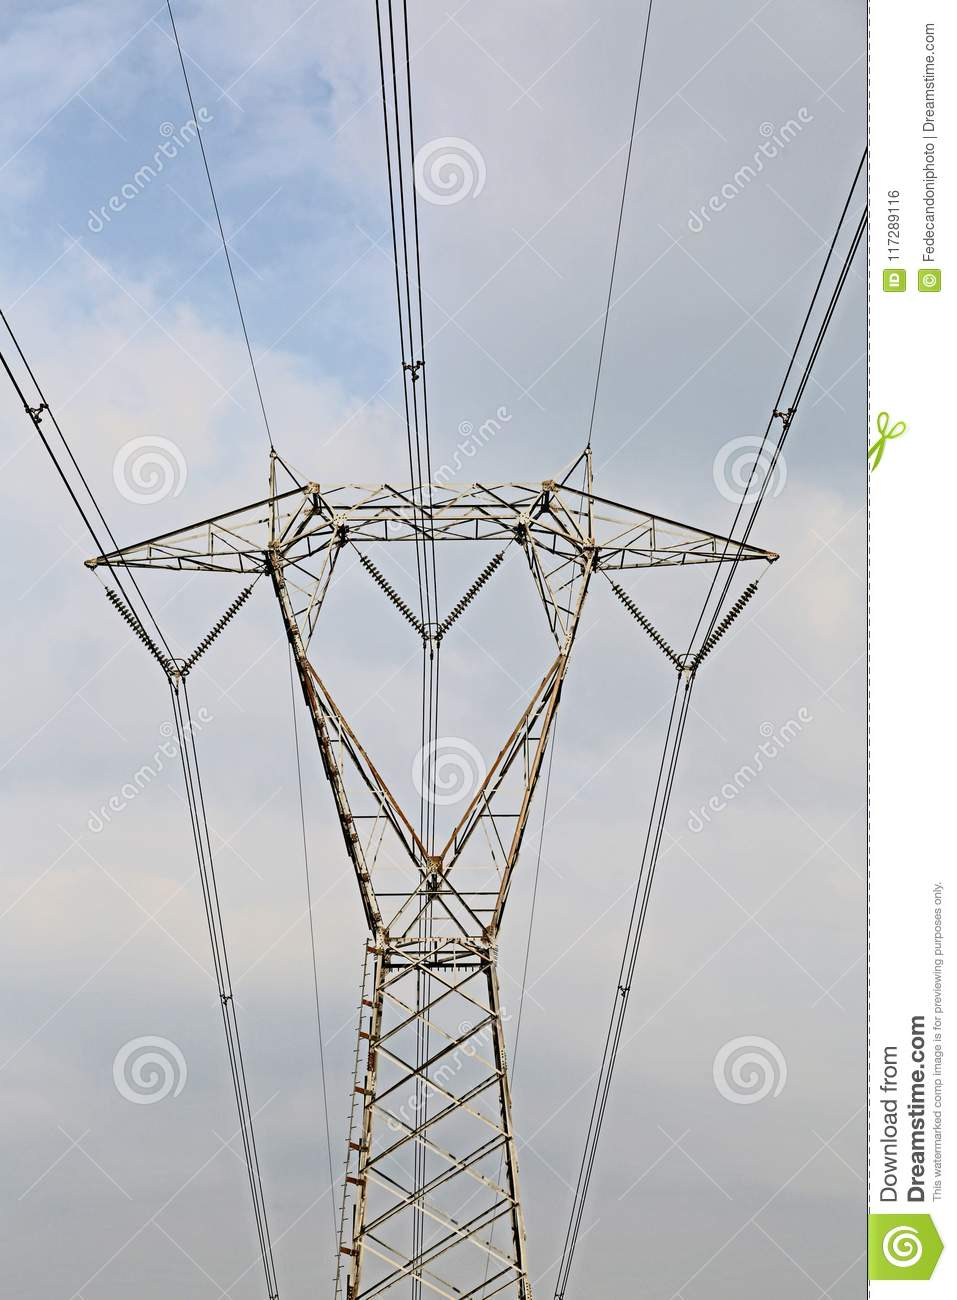 High Voltage Pylon With Electric Wires Stock Photo - Image of grid ...